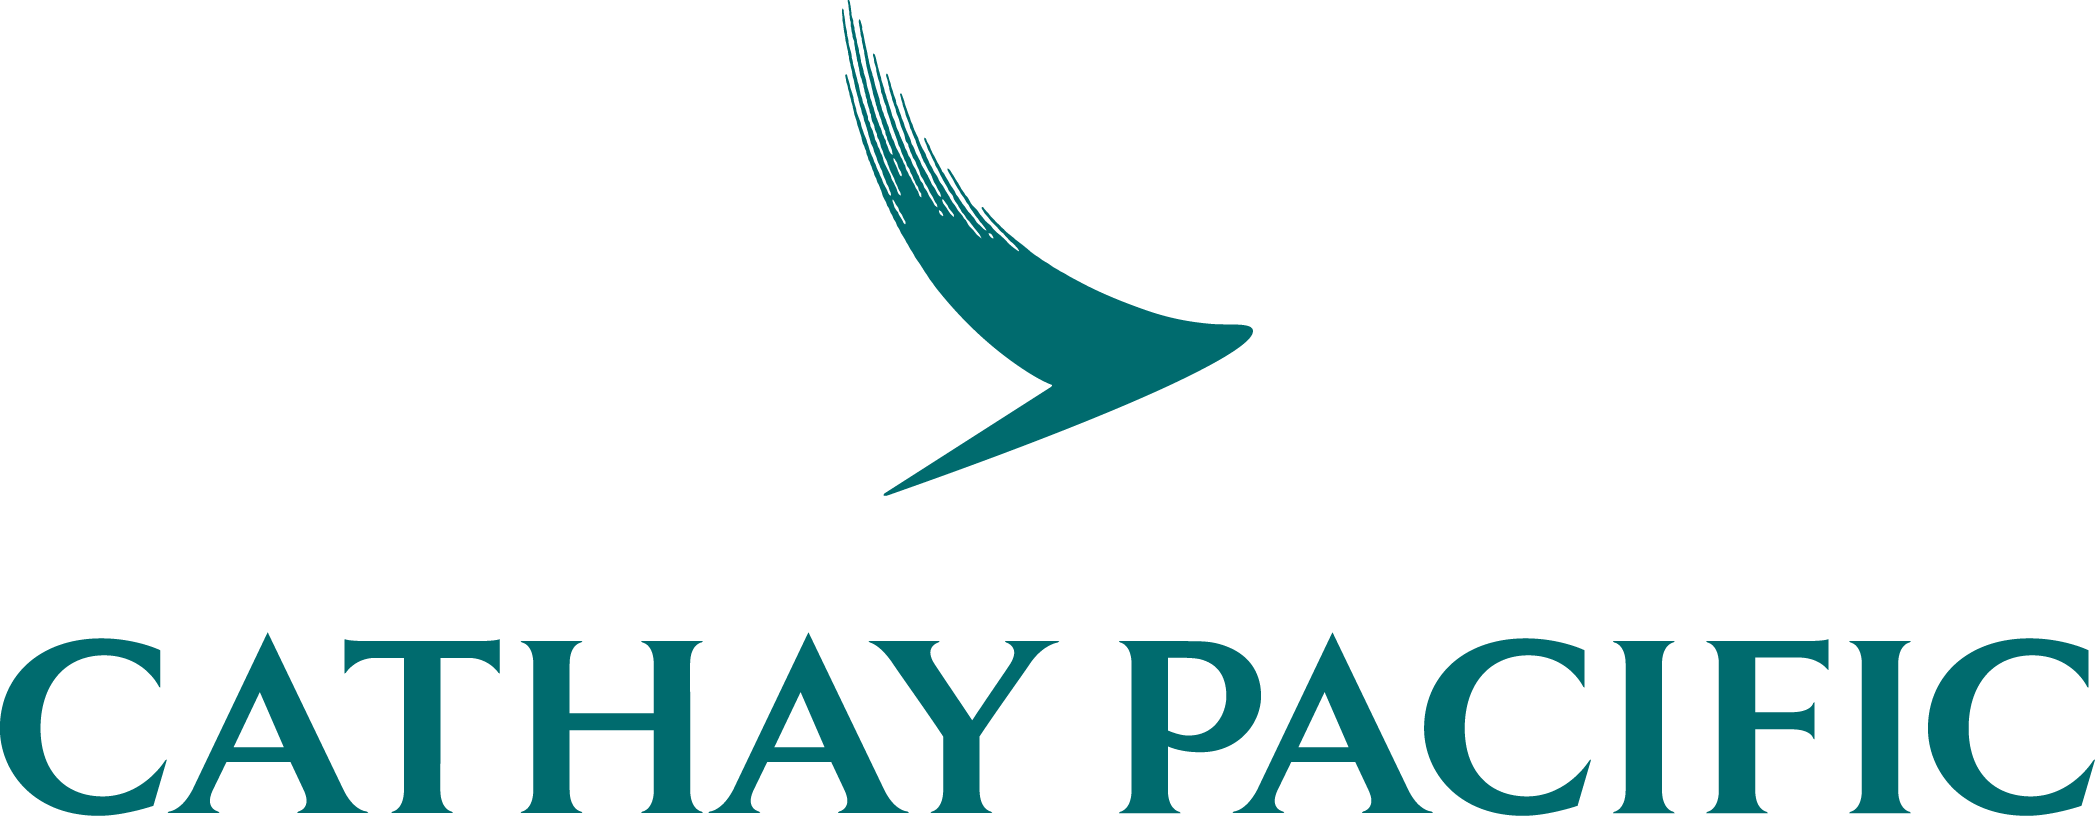 Cathay-Pacfic-logo.png